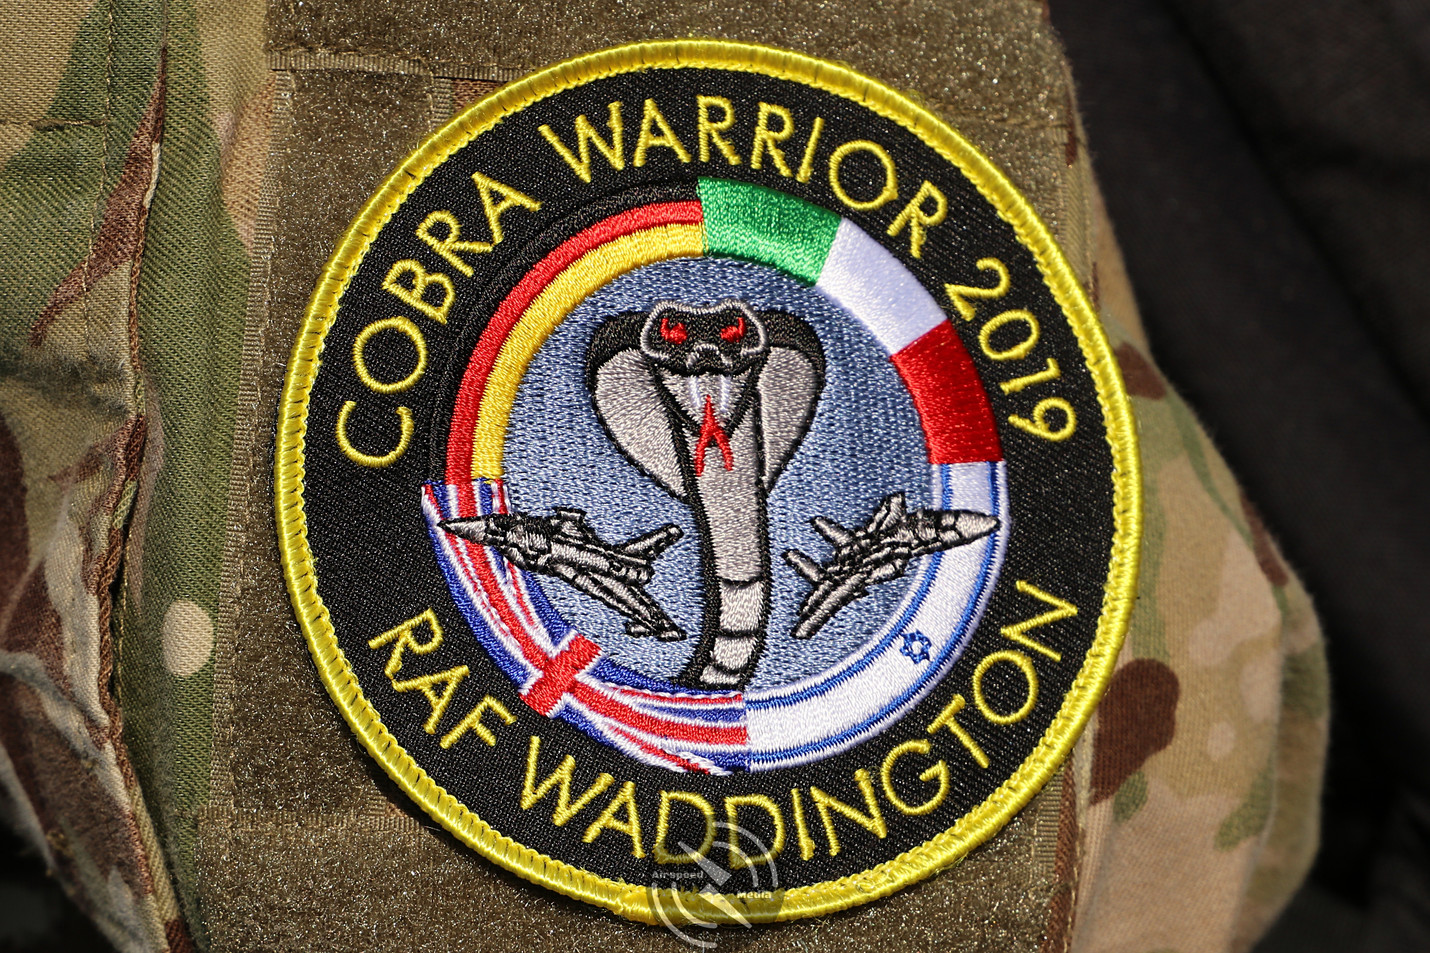 RAF Cobra Warrior patch 2019 (38).JPG